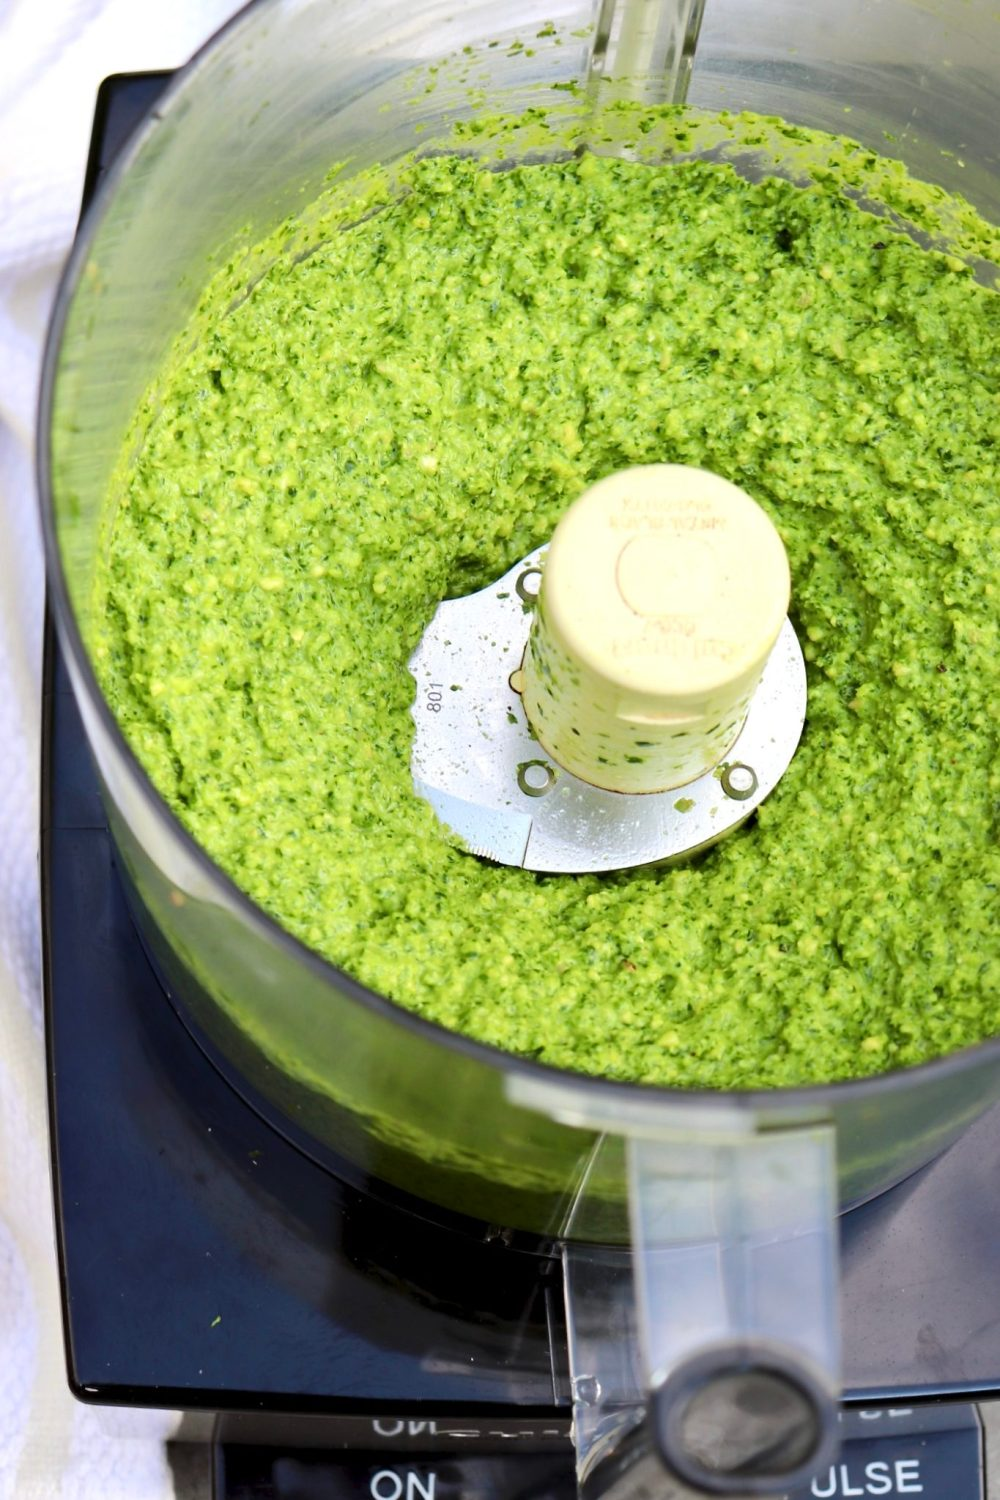 Quite possibly the most versatile pesto ever, this simple recipe will make delicious use out of a variety of healthy greens and can be enjoyed in so many ways!